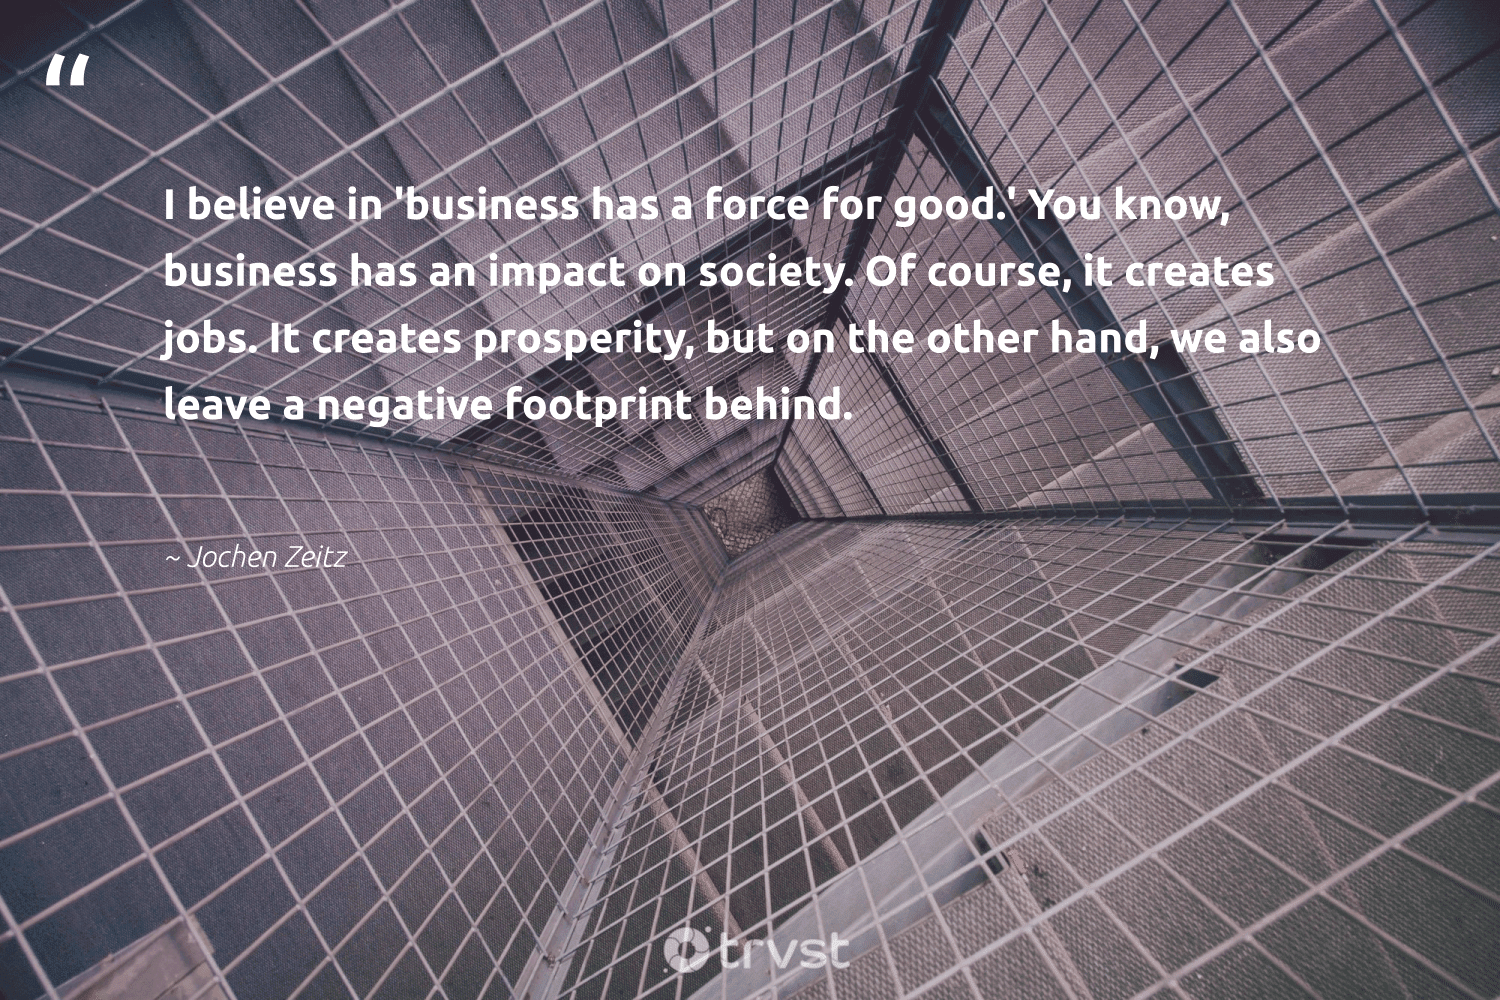 """""""I believe in 'business has a force for good.' You know, business has an impact on society. Of course, it creates jobs. It creates prosperity, but on the other hand, we also leave a negative footprint behind.""""  - Jochen Zeitz #trvst #quotes #impact #society #sharedresponsibility #dosomething #weareallone #socialchange #ethicalbusiness #thinkgreen #dogood #bethechange"""